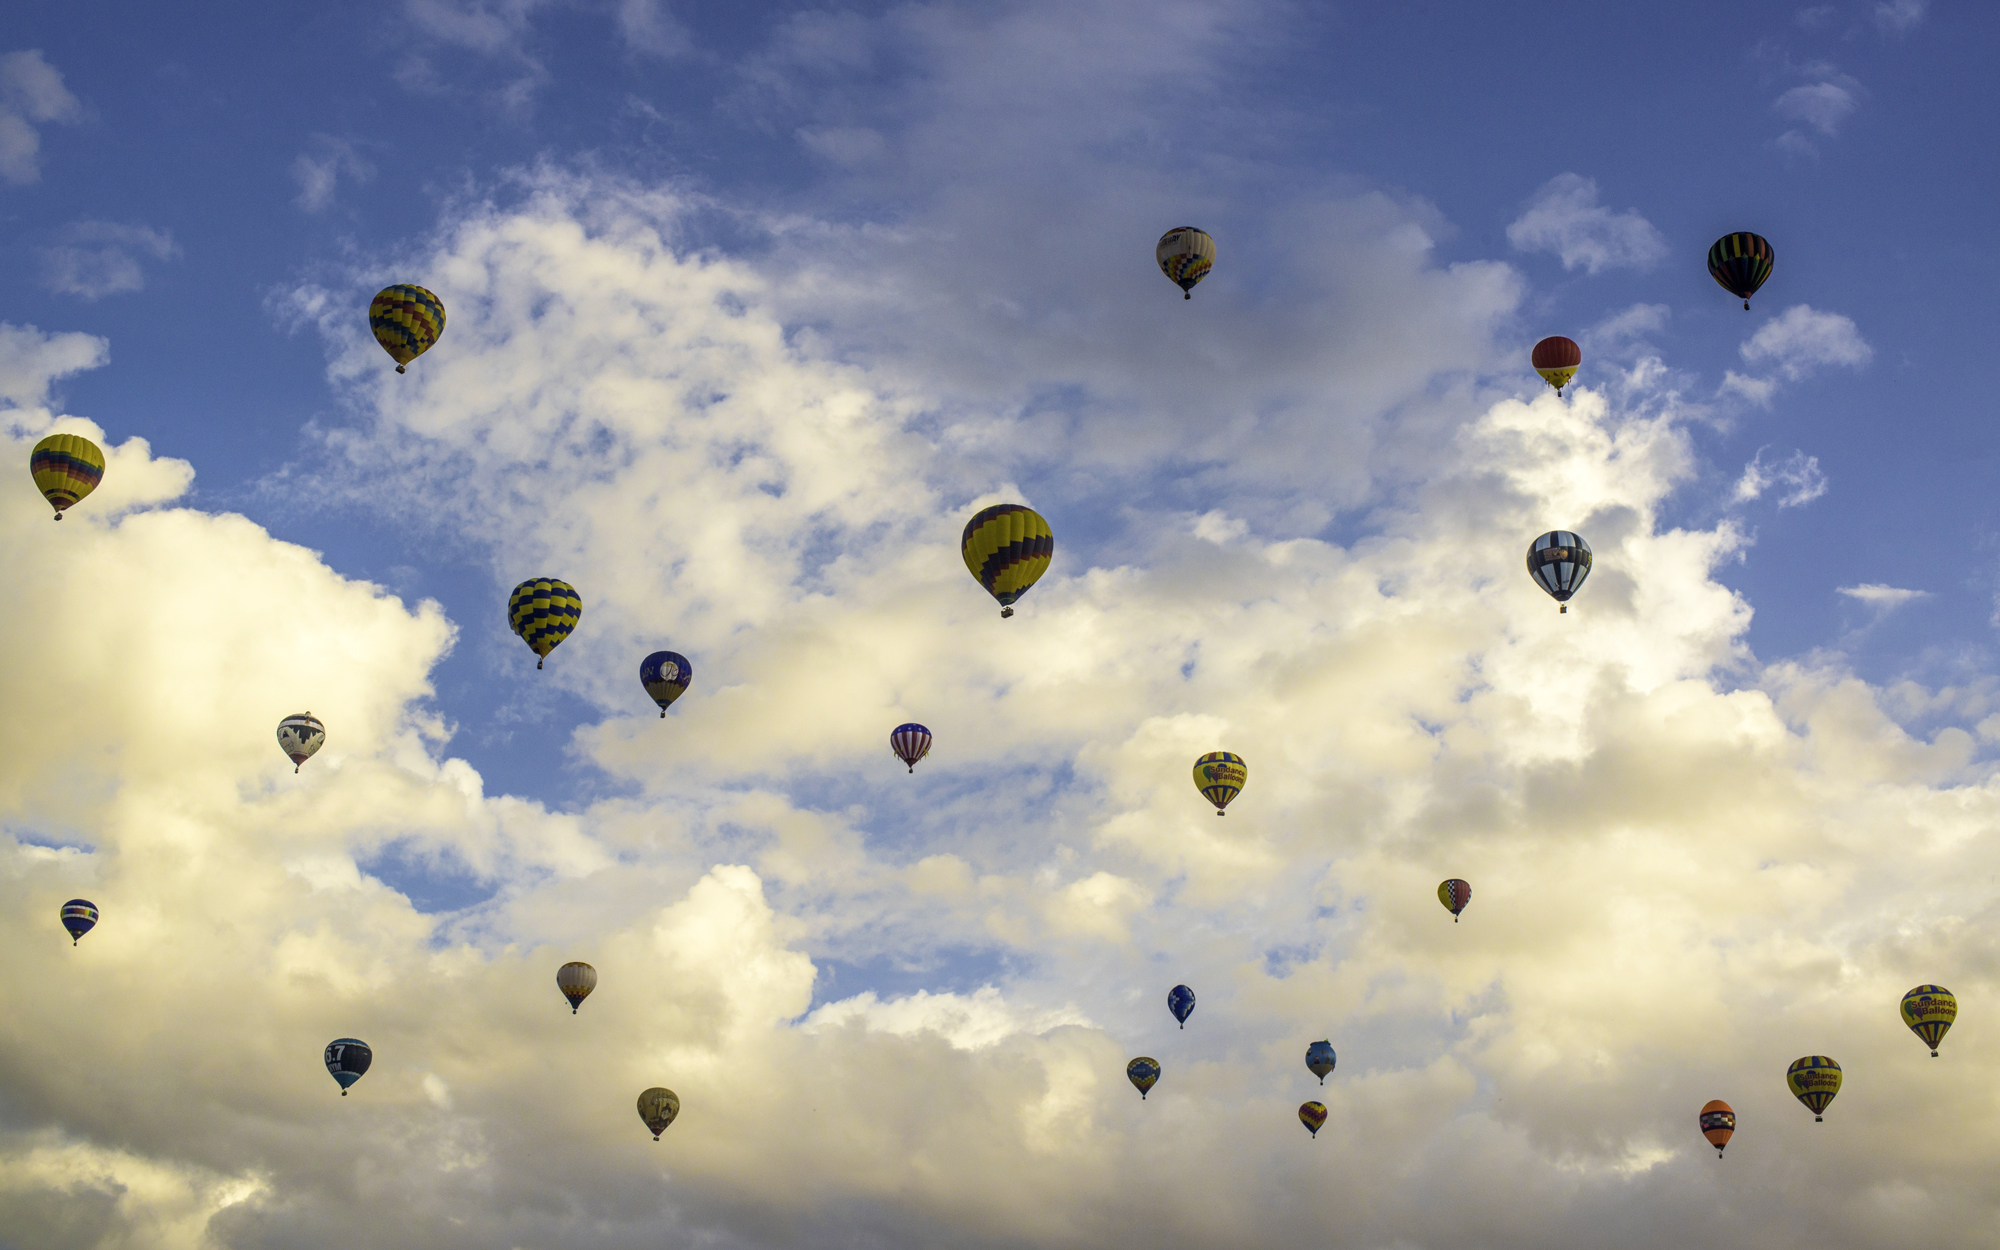 Albuquerque International Balloon Fiesta,  United States